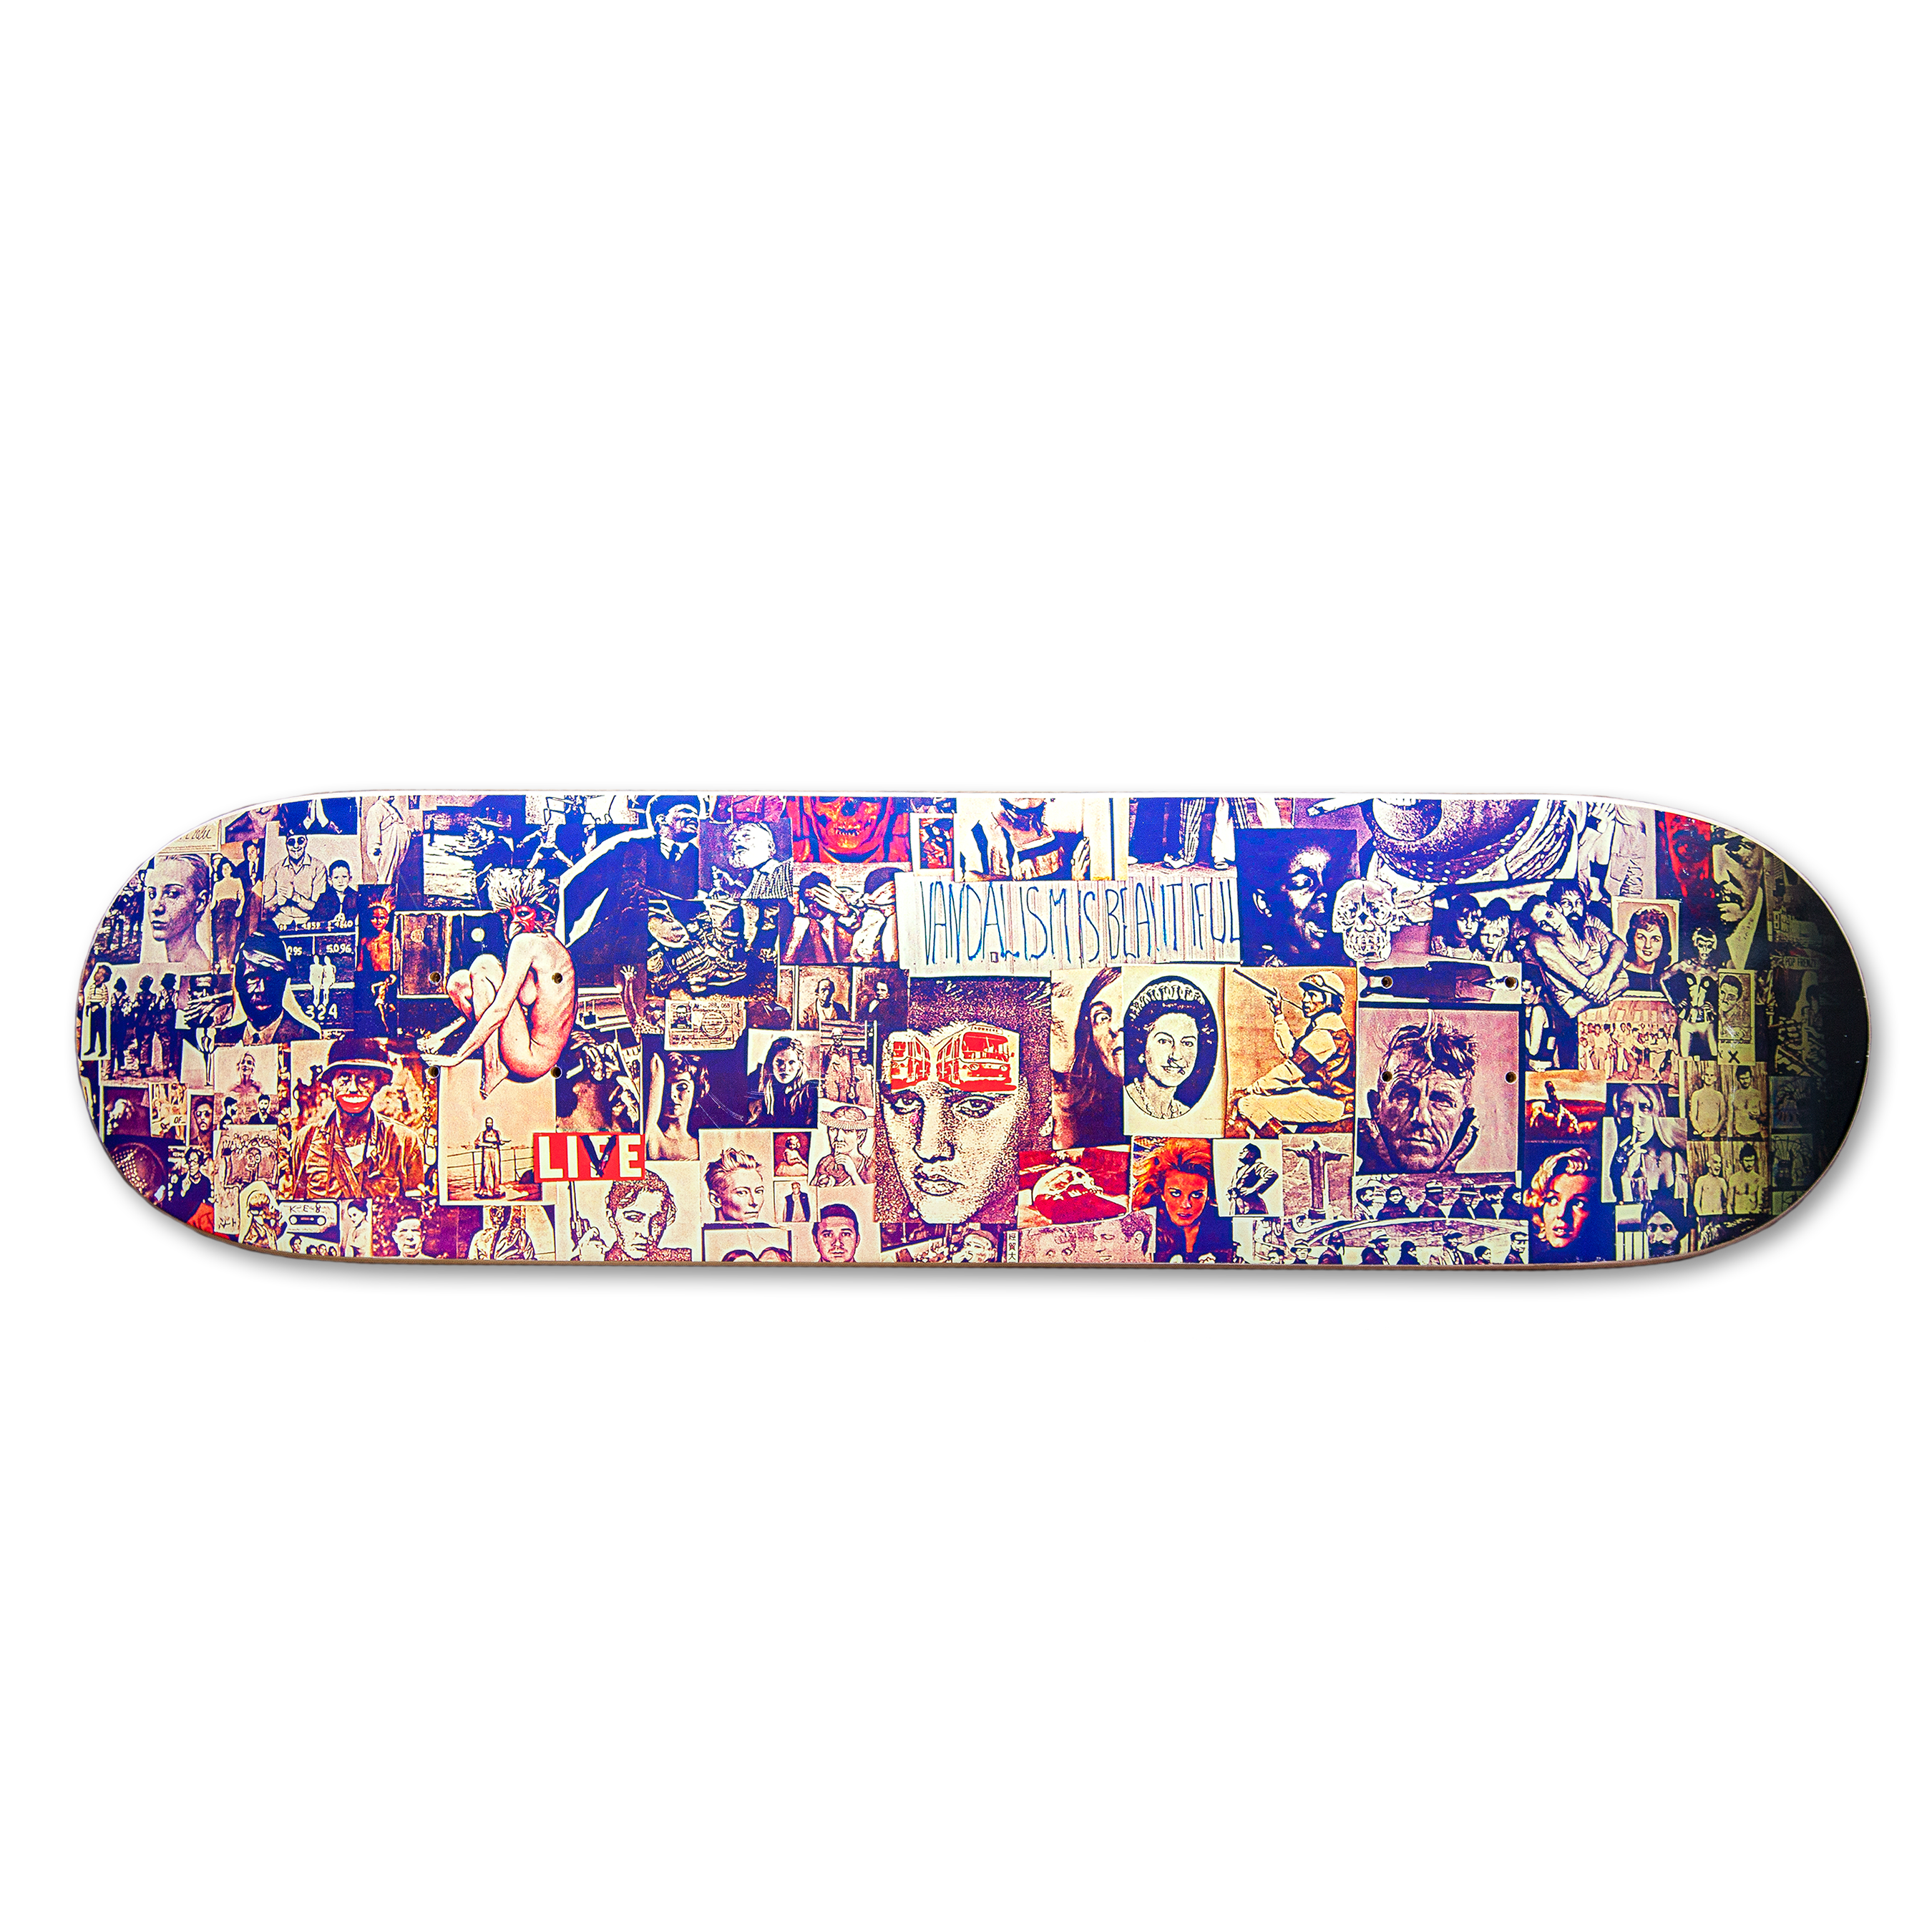 Skateboard - Abstract Product Image